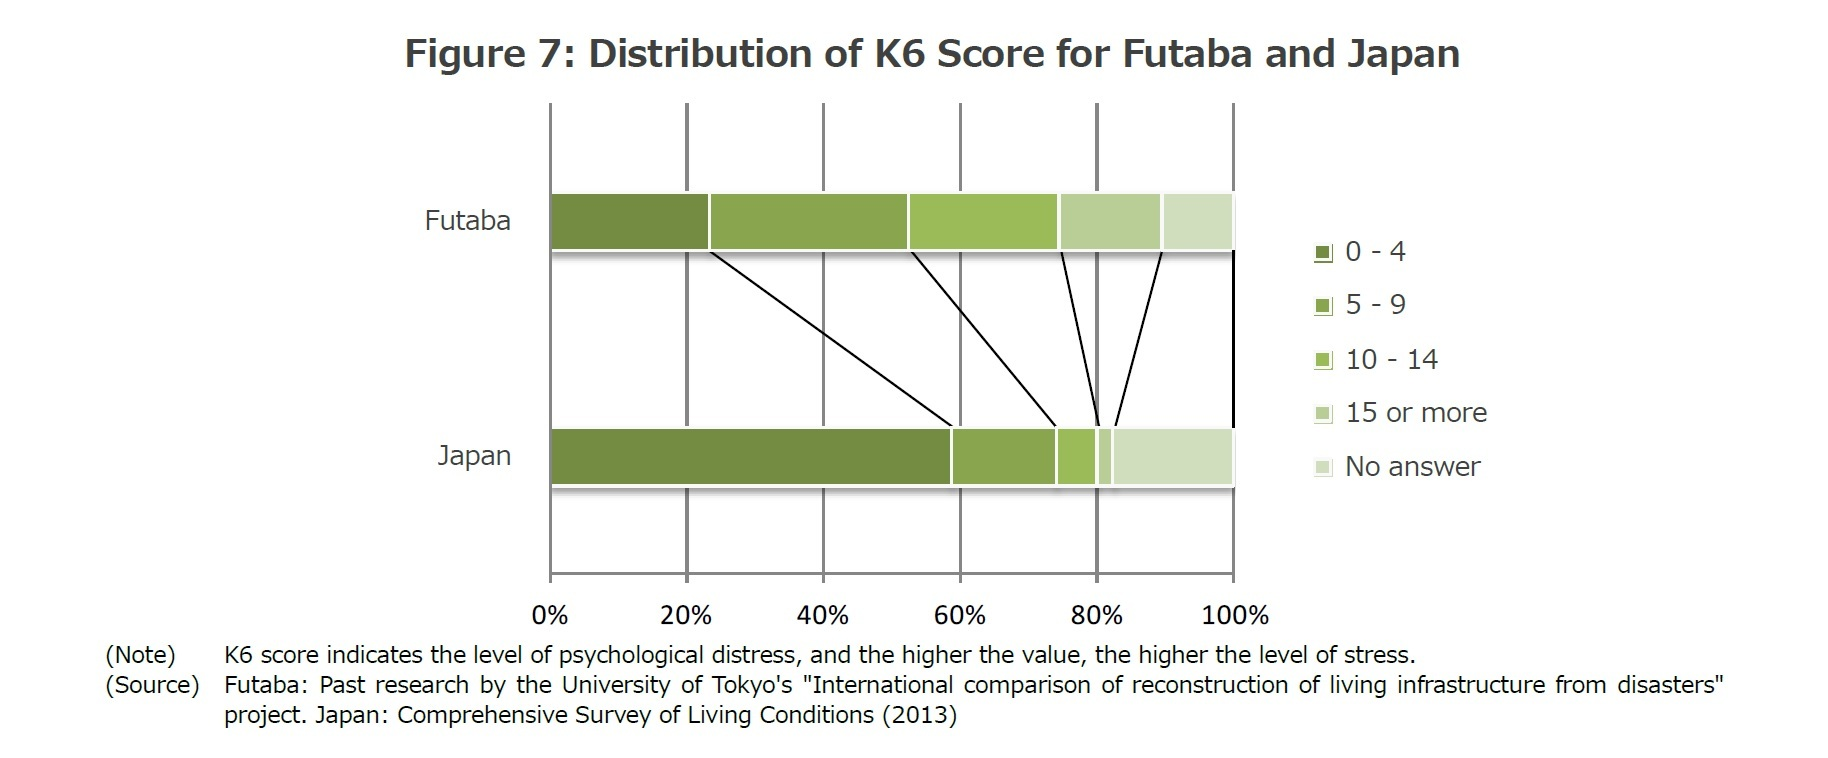 Figure 7: Distribution of K6 Score for Futaba and Japan